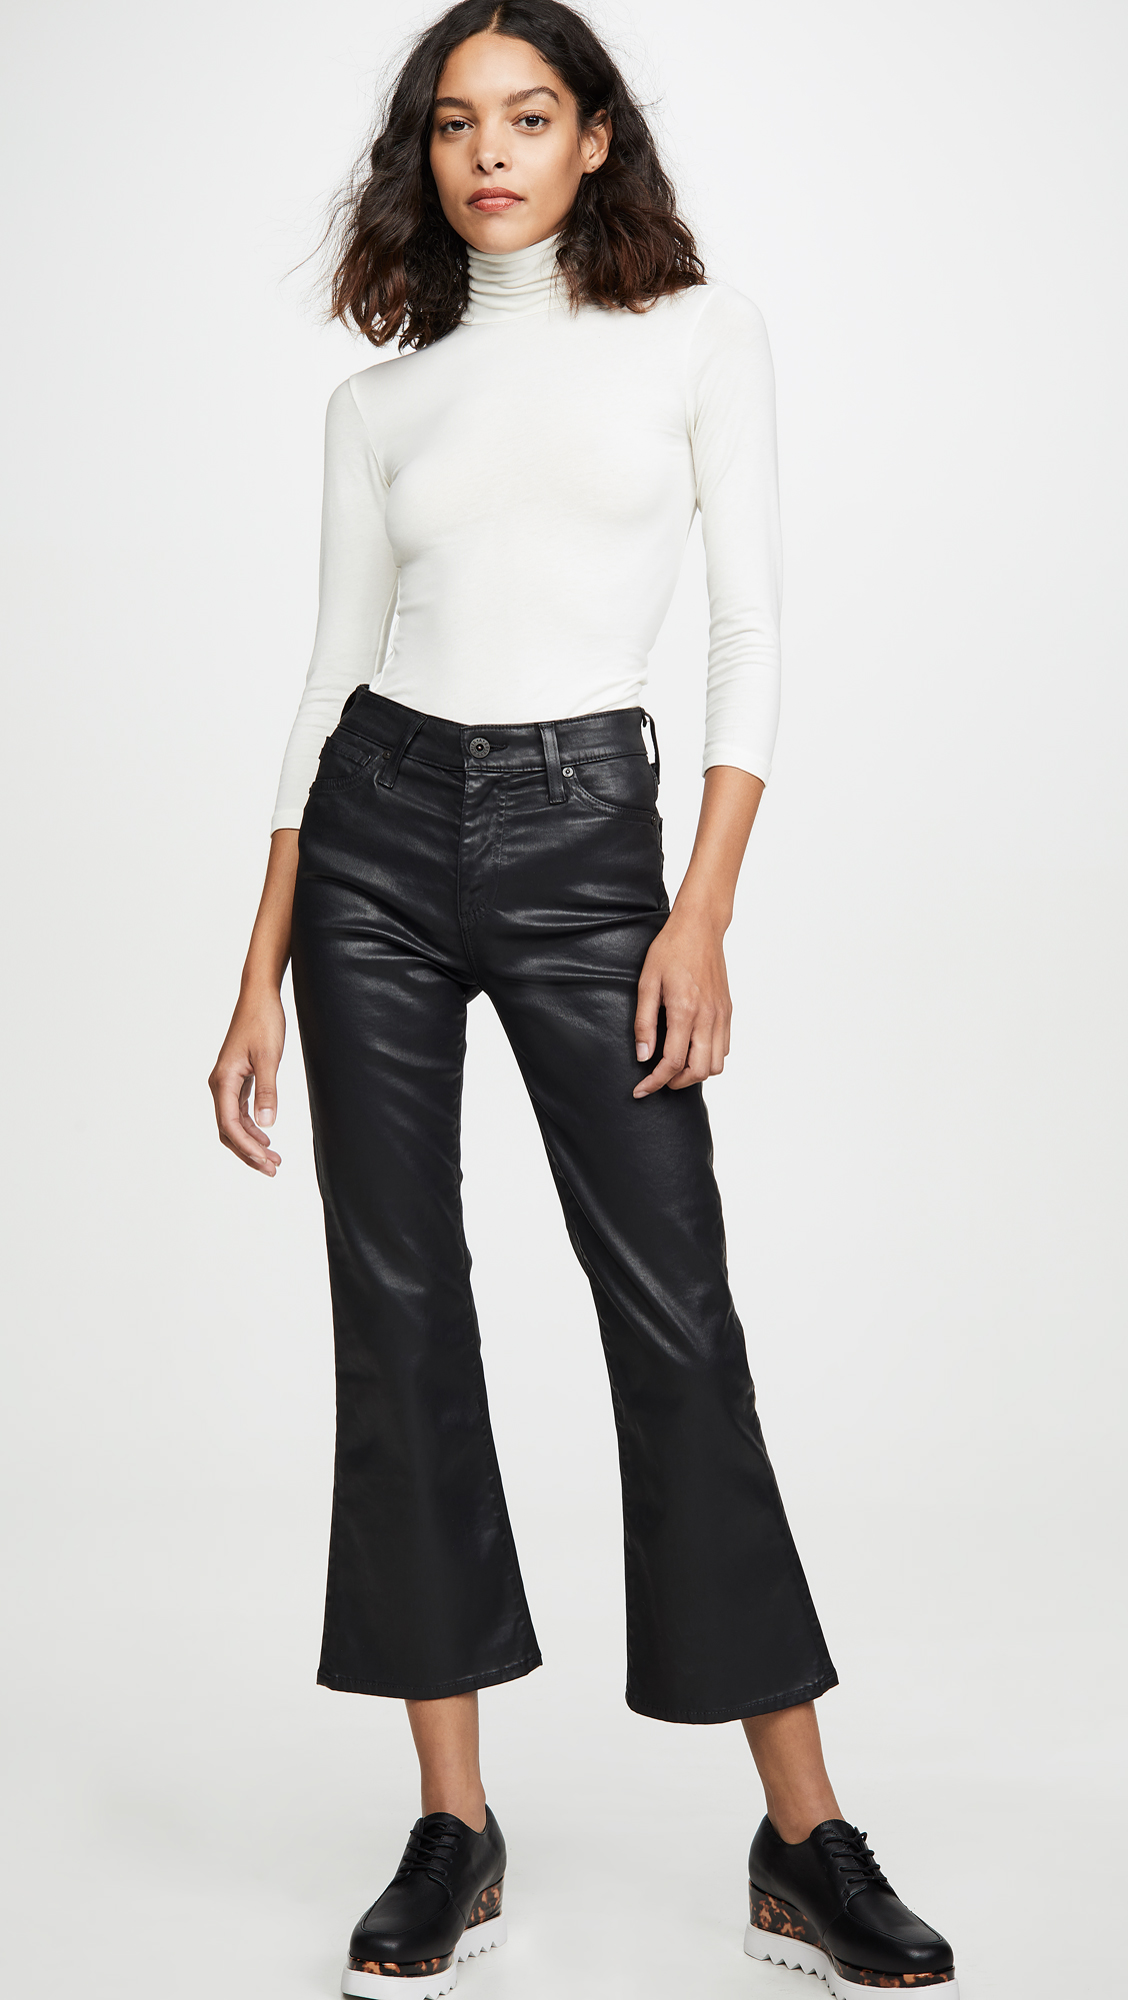 AG The Quinne Leatherette Light Cropped Jeans